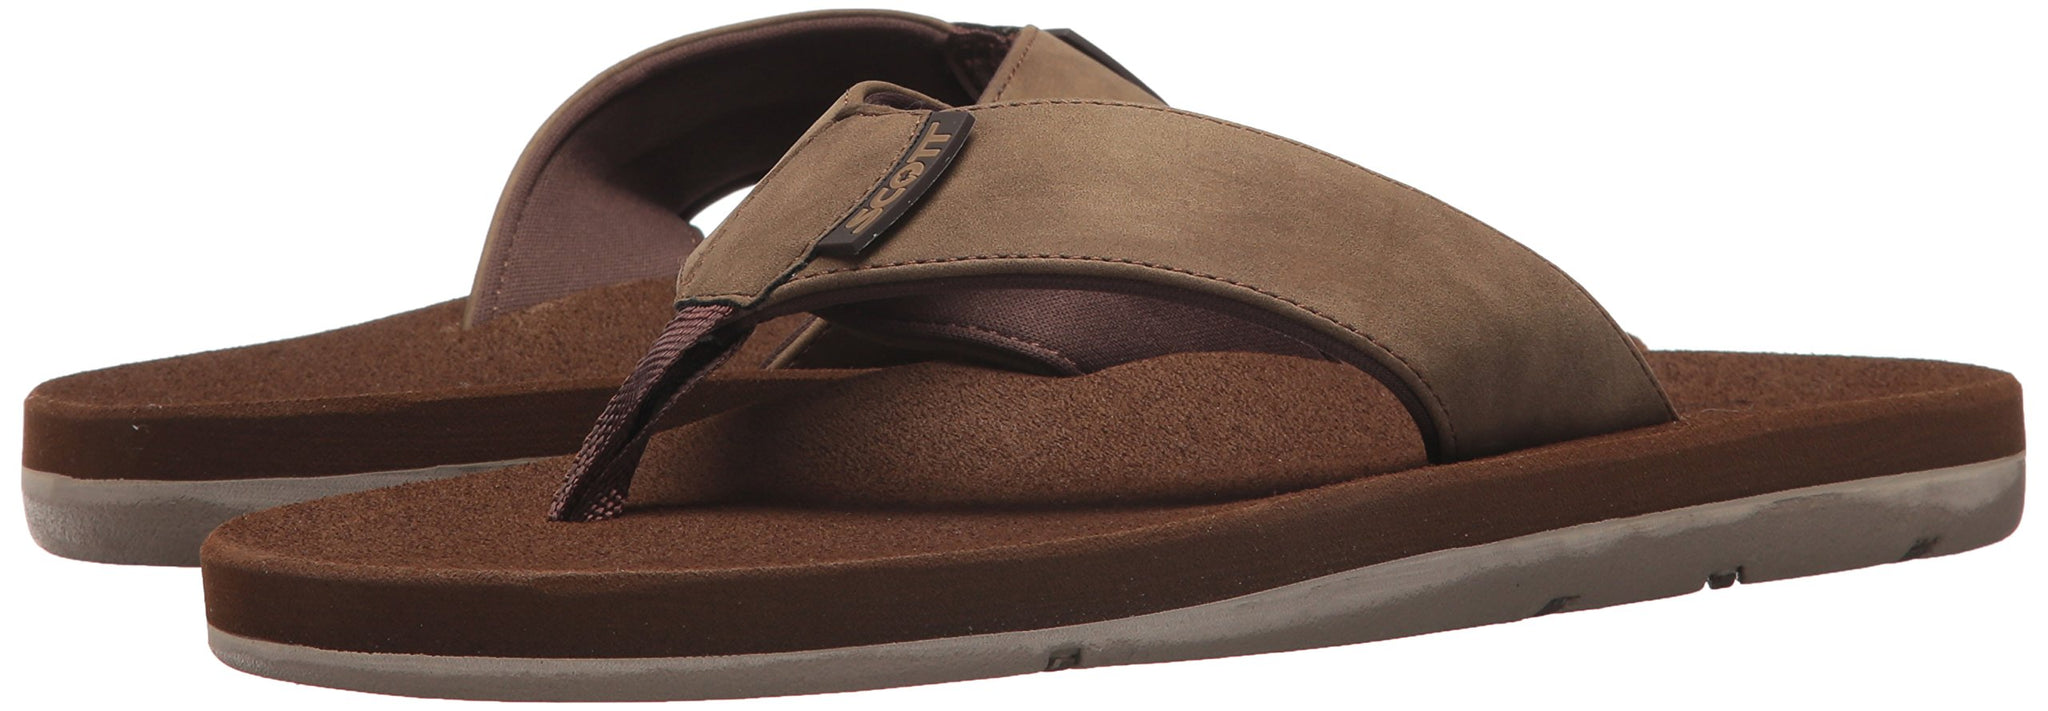 Scott Men's Kapena Vegan Chestnut Brown Sandals Neoprene Lined - AlohaShoes.com